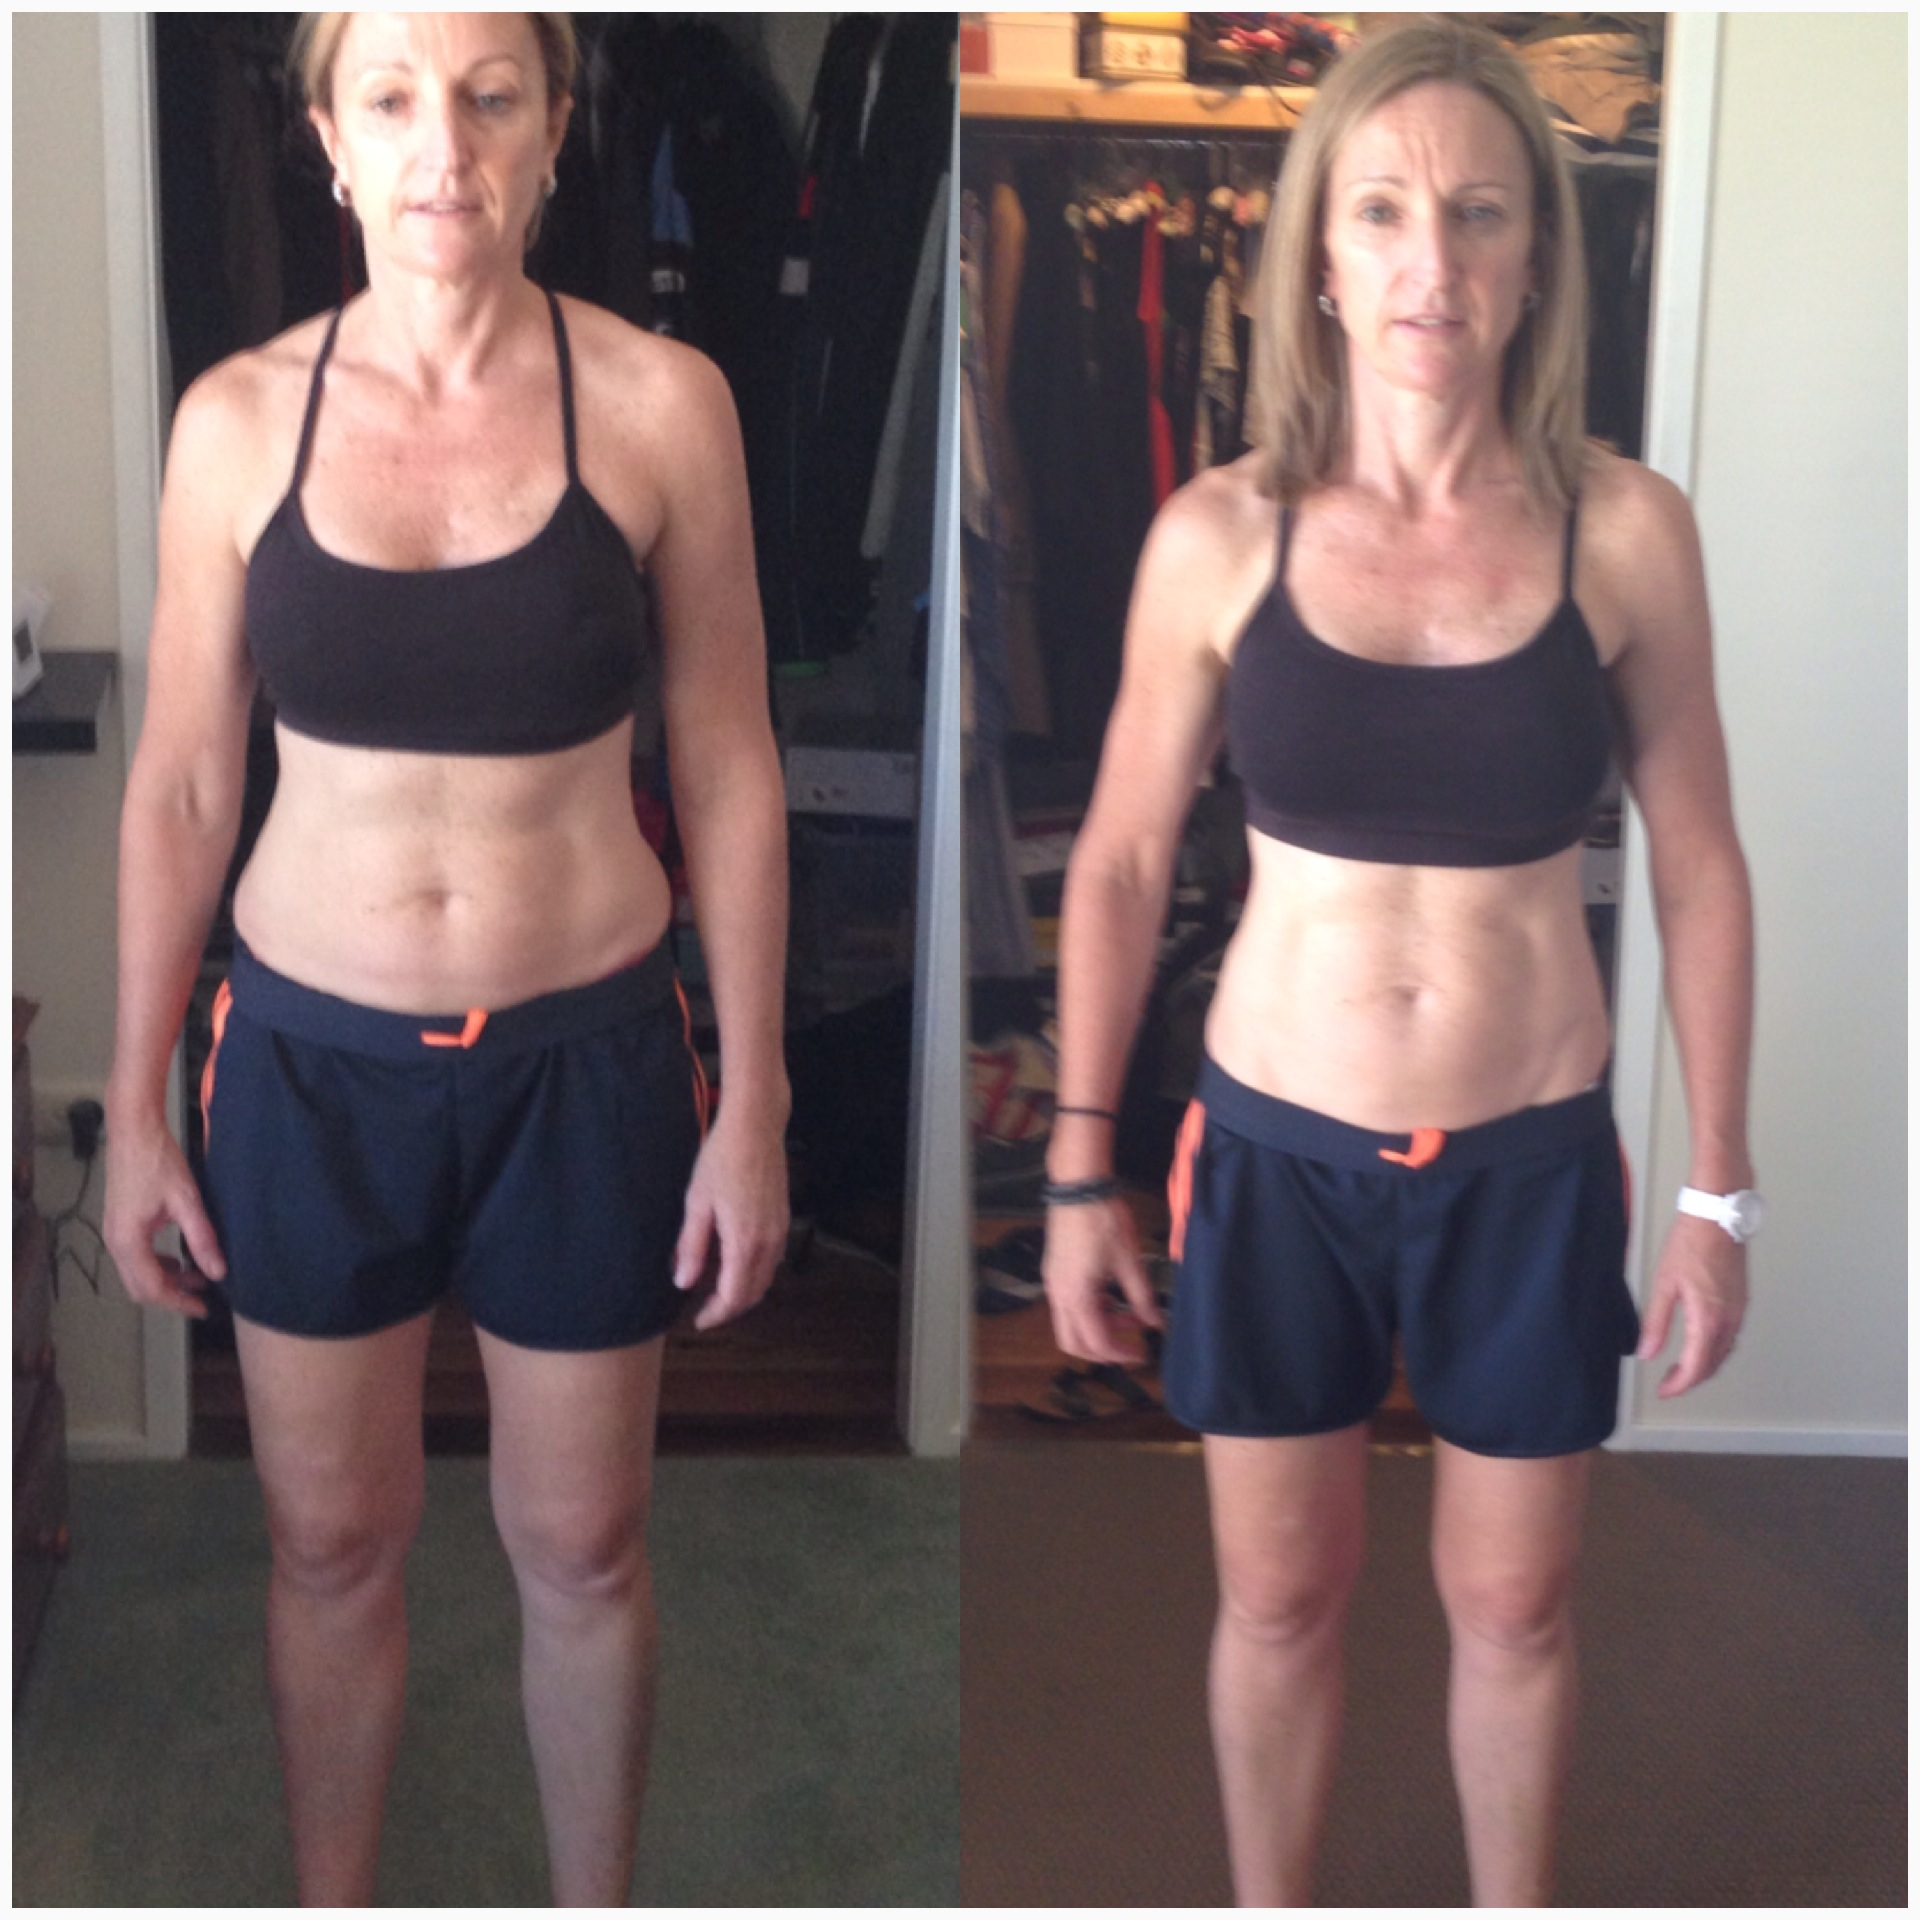 FRONT - Left: Before, Right: After 8 Week NH-Fit